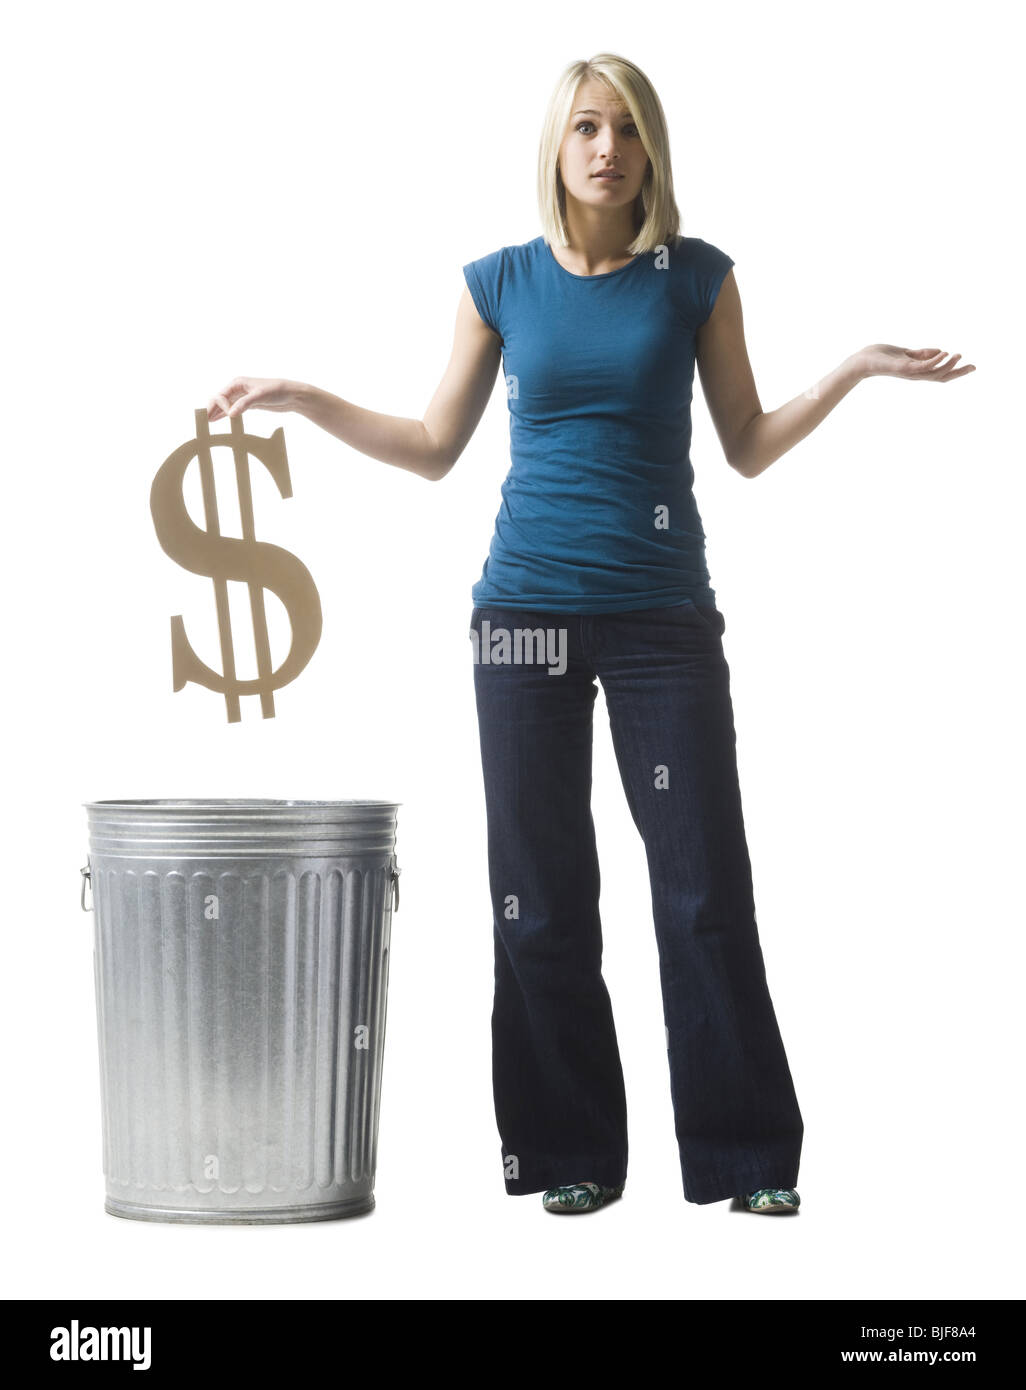 woman throwing dollar symbol in the trash - Stock Image